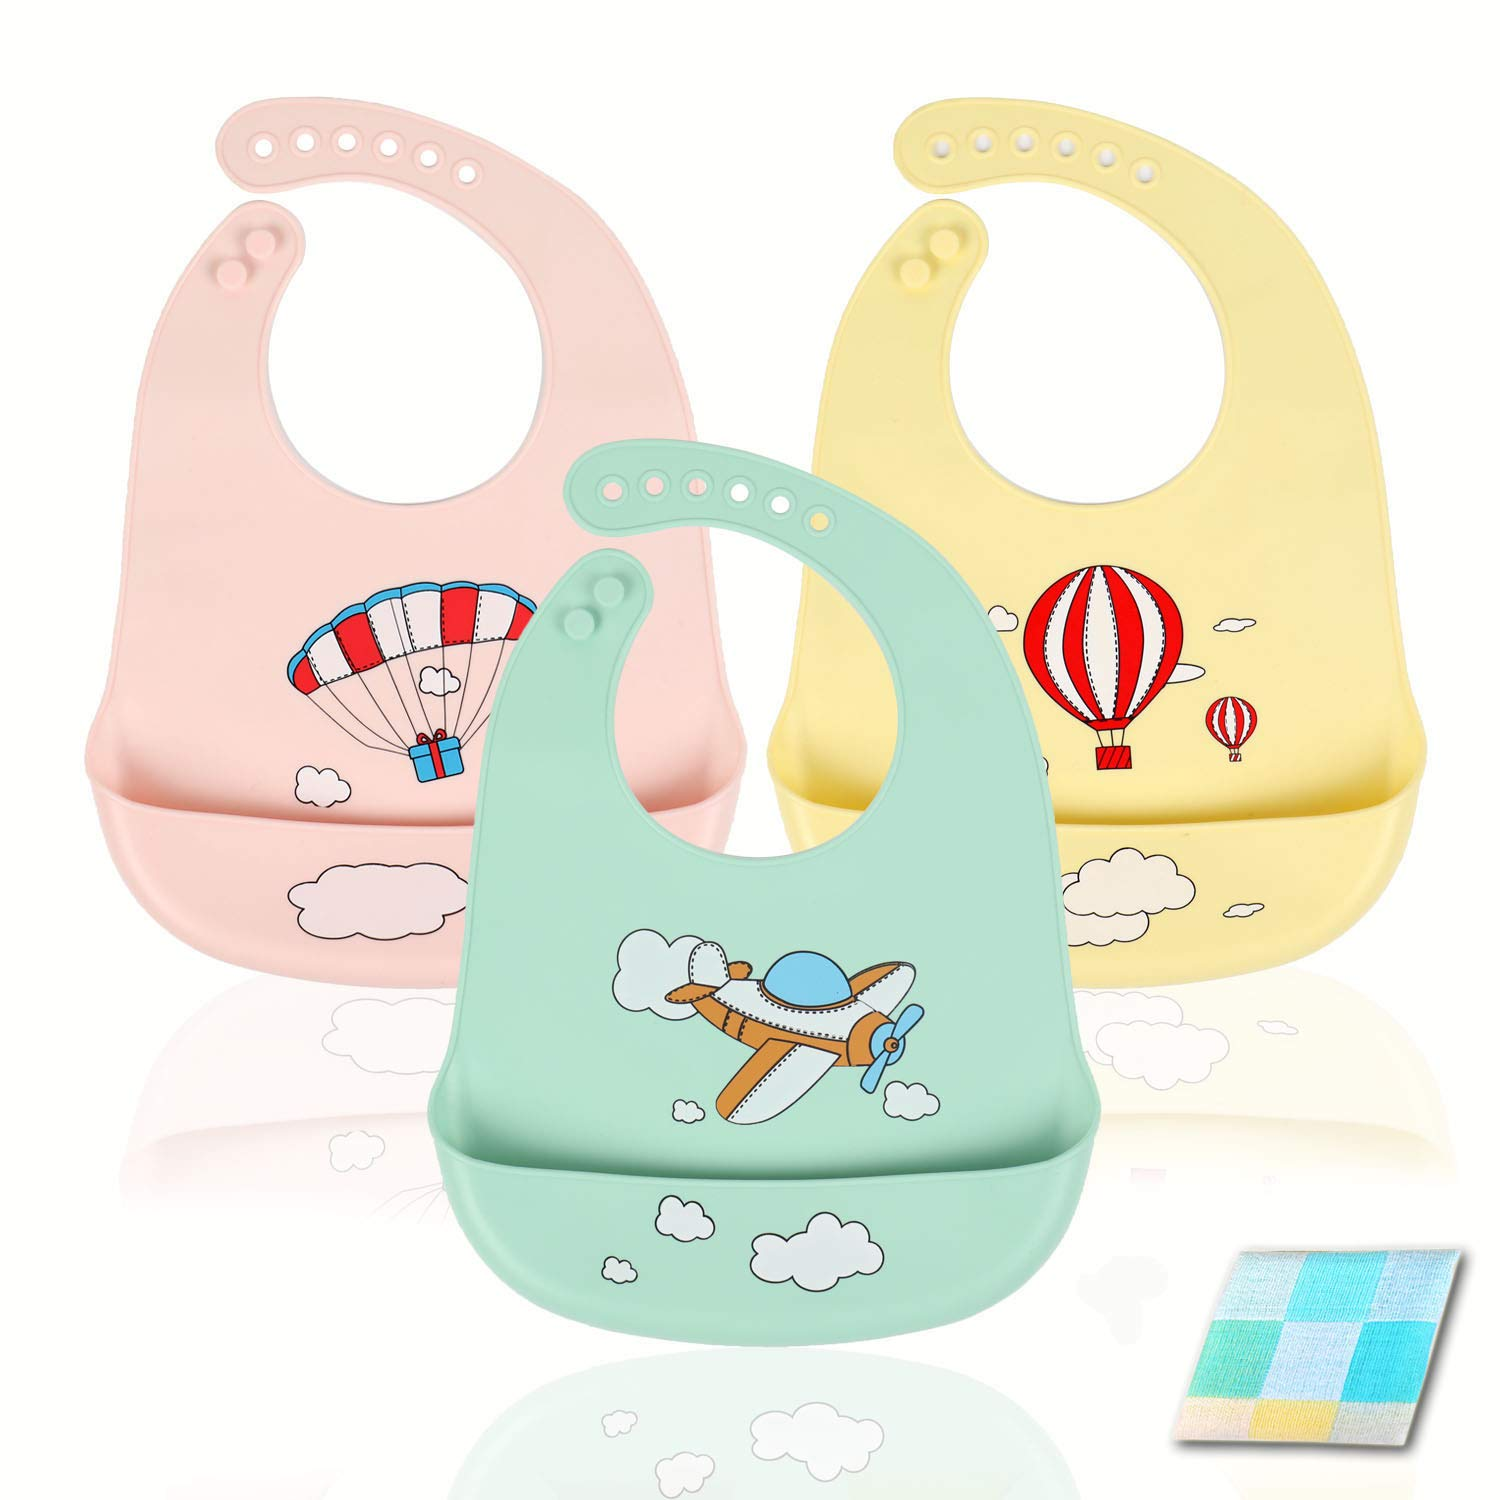 ANGNYA 3pcs Silicone Baby Bibs Waterproof Feeding Bibs with Wide Food Crumb Catcher Pocket Super Soft and Easily Wipe Clean Baby Bibs Set with Free Saliva Towel